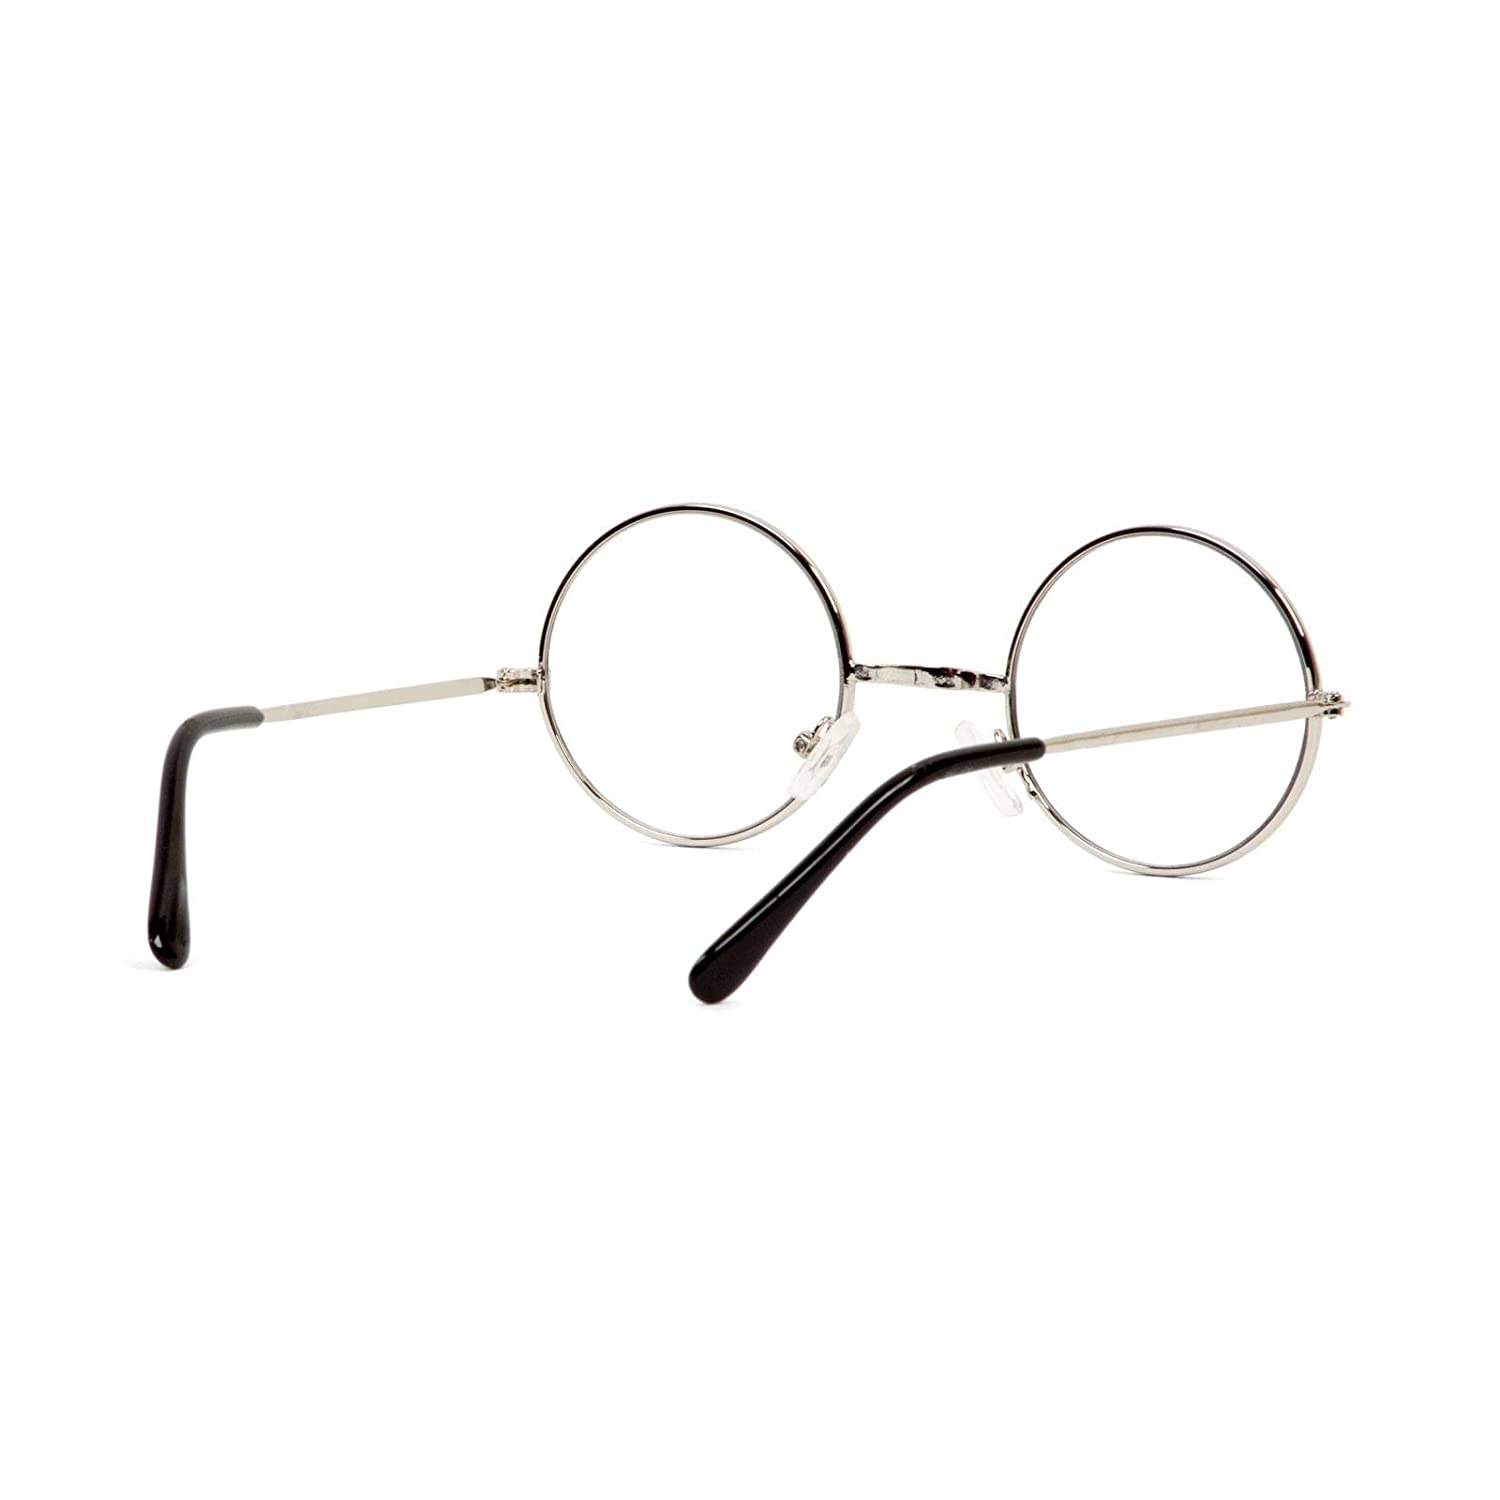 Gravity Shades Circular Silver Frame Clear Lens Glasses